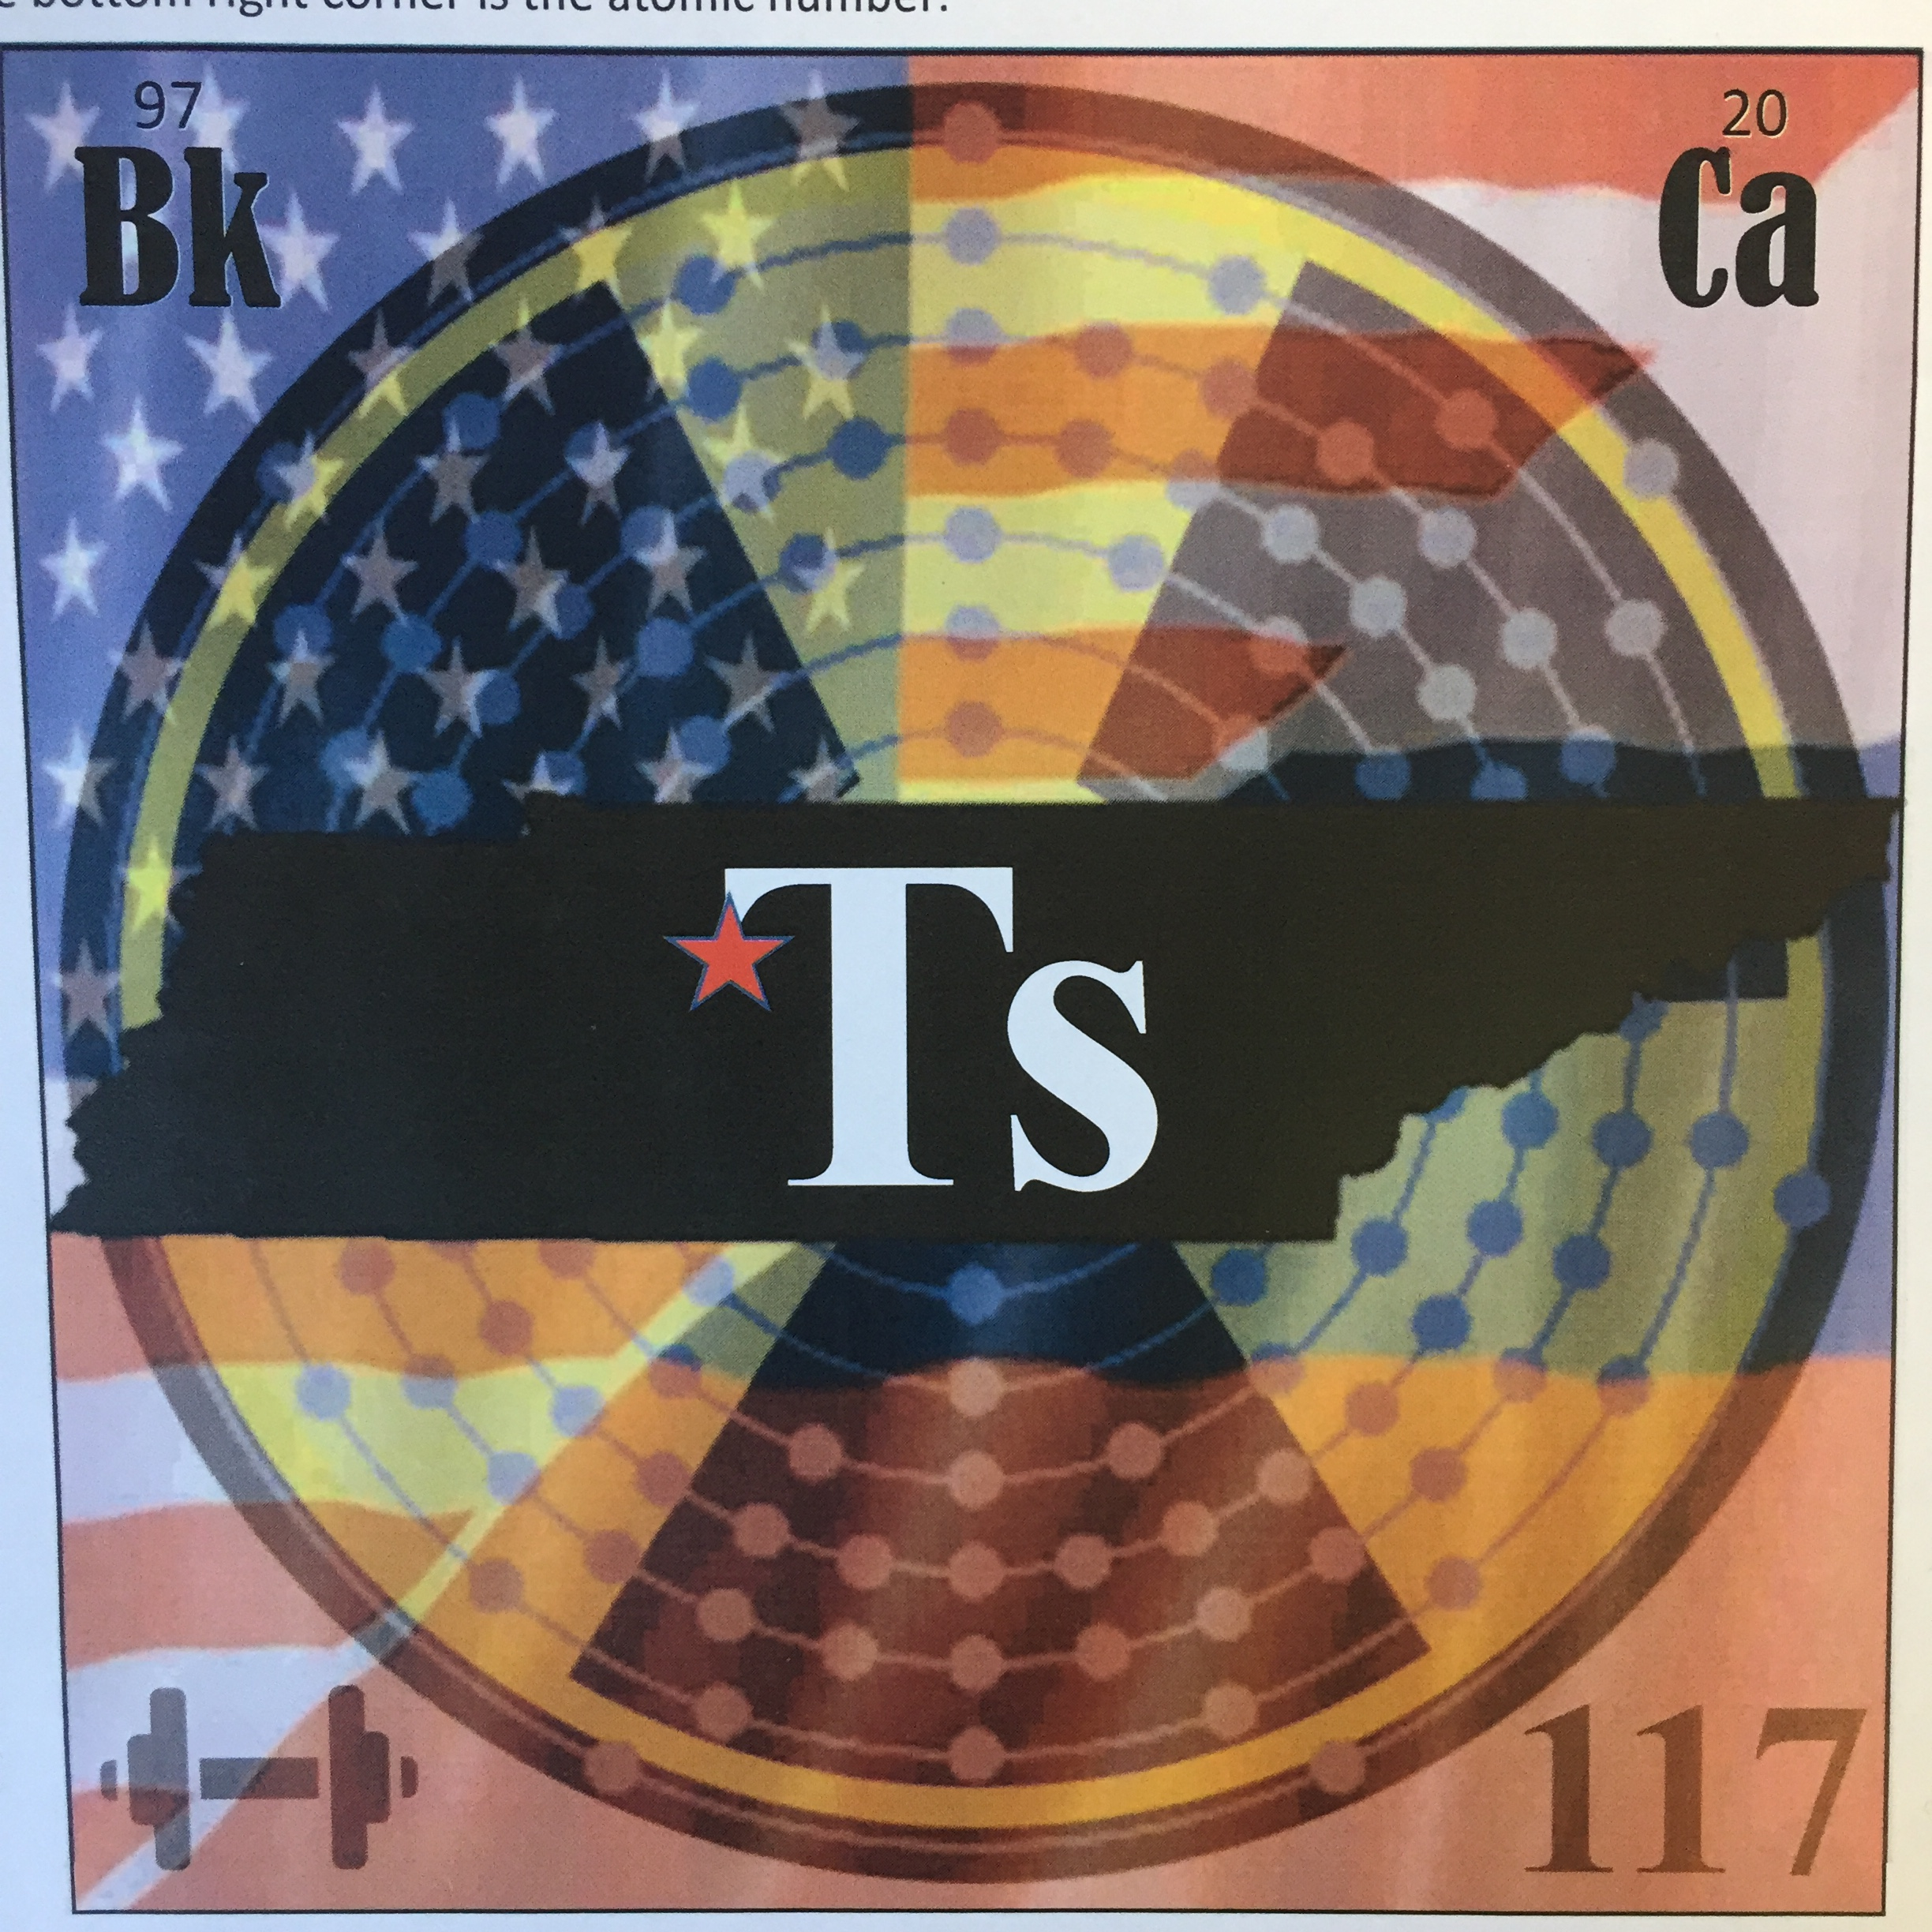 elemental tile of tennessine digitally created showing Tennessee state with American and Russian flags super-imposed.